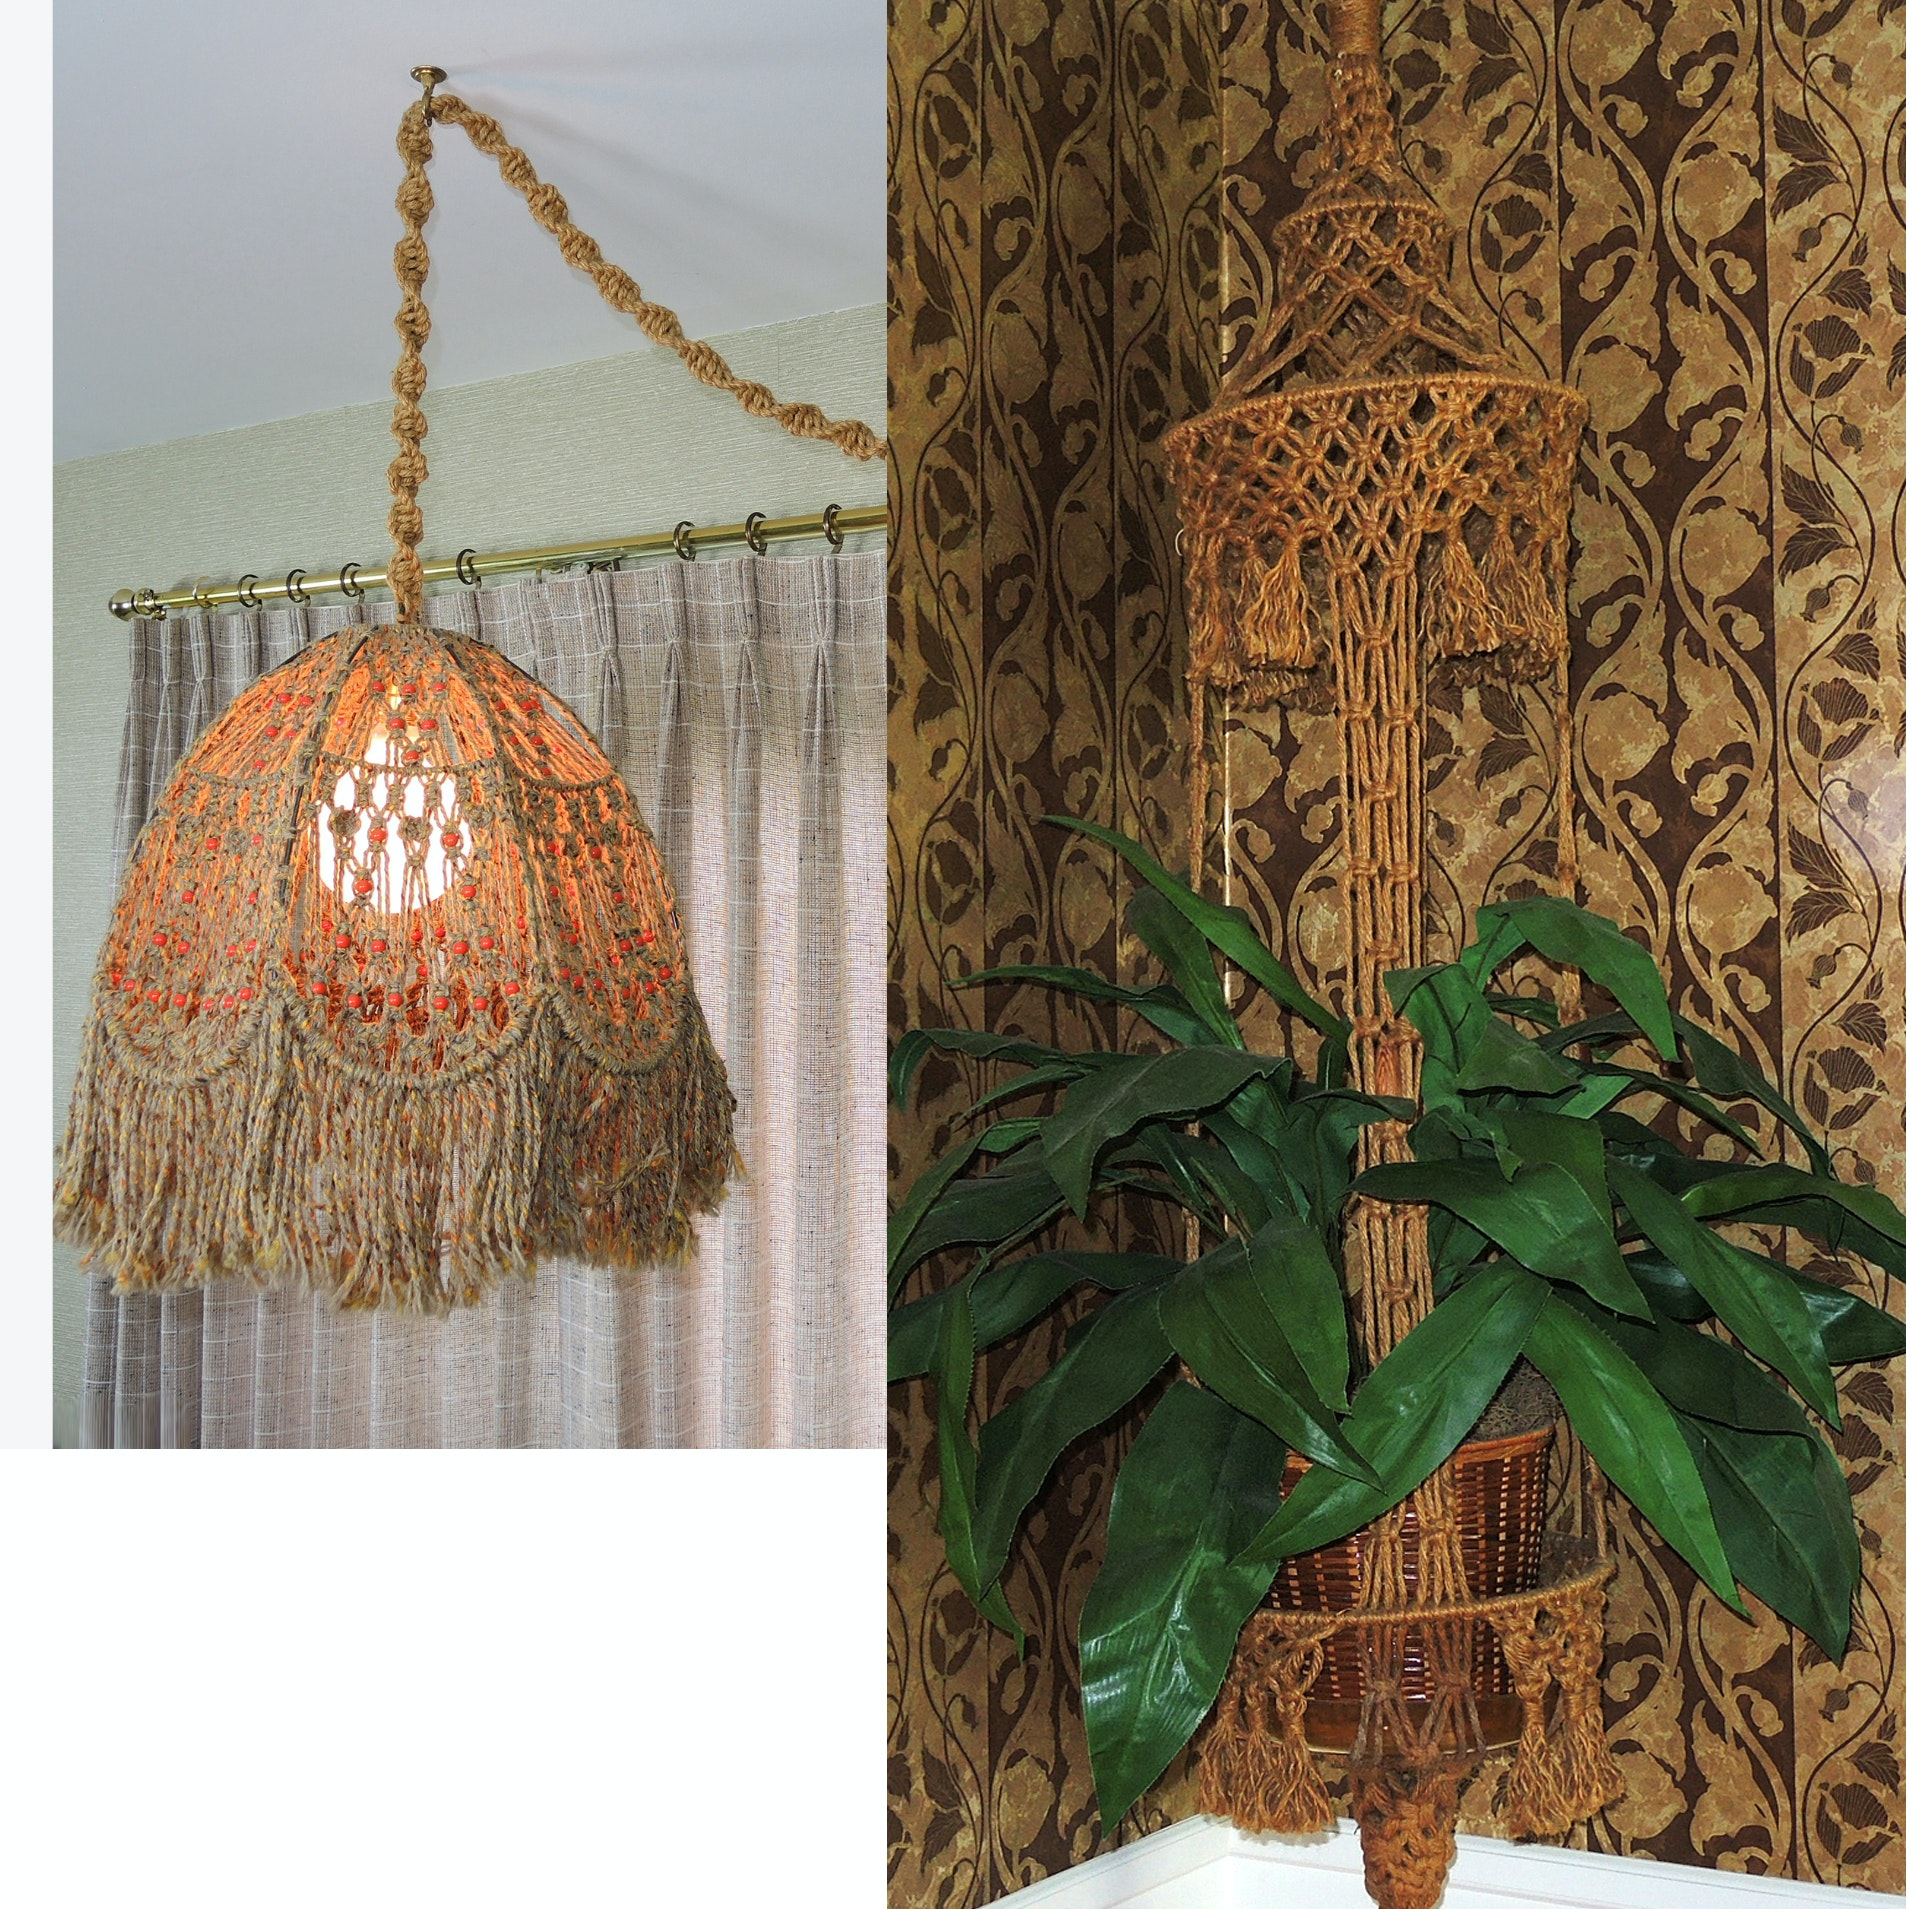 Vintage Hanging Macramé Swag Lamp and Plant Hanger